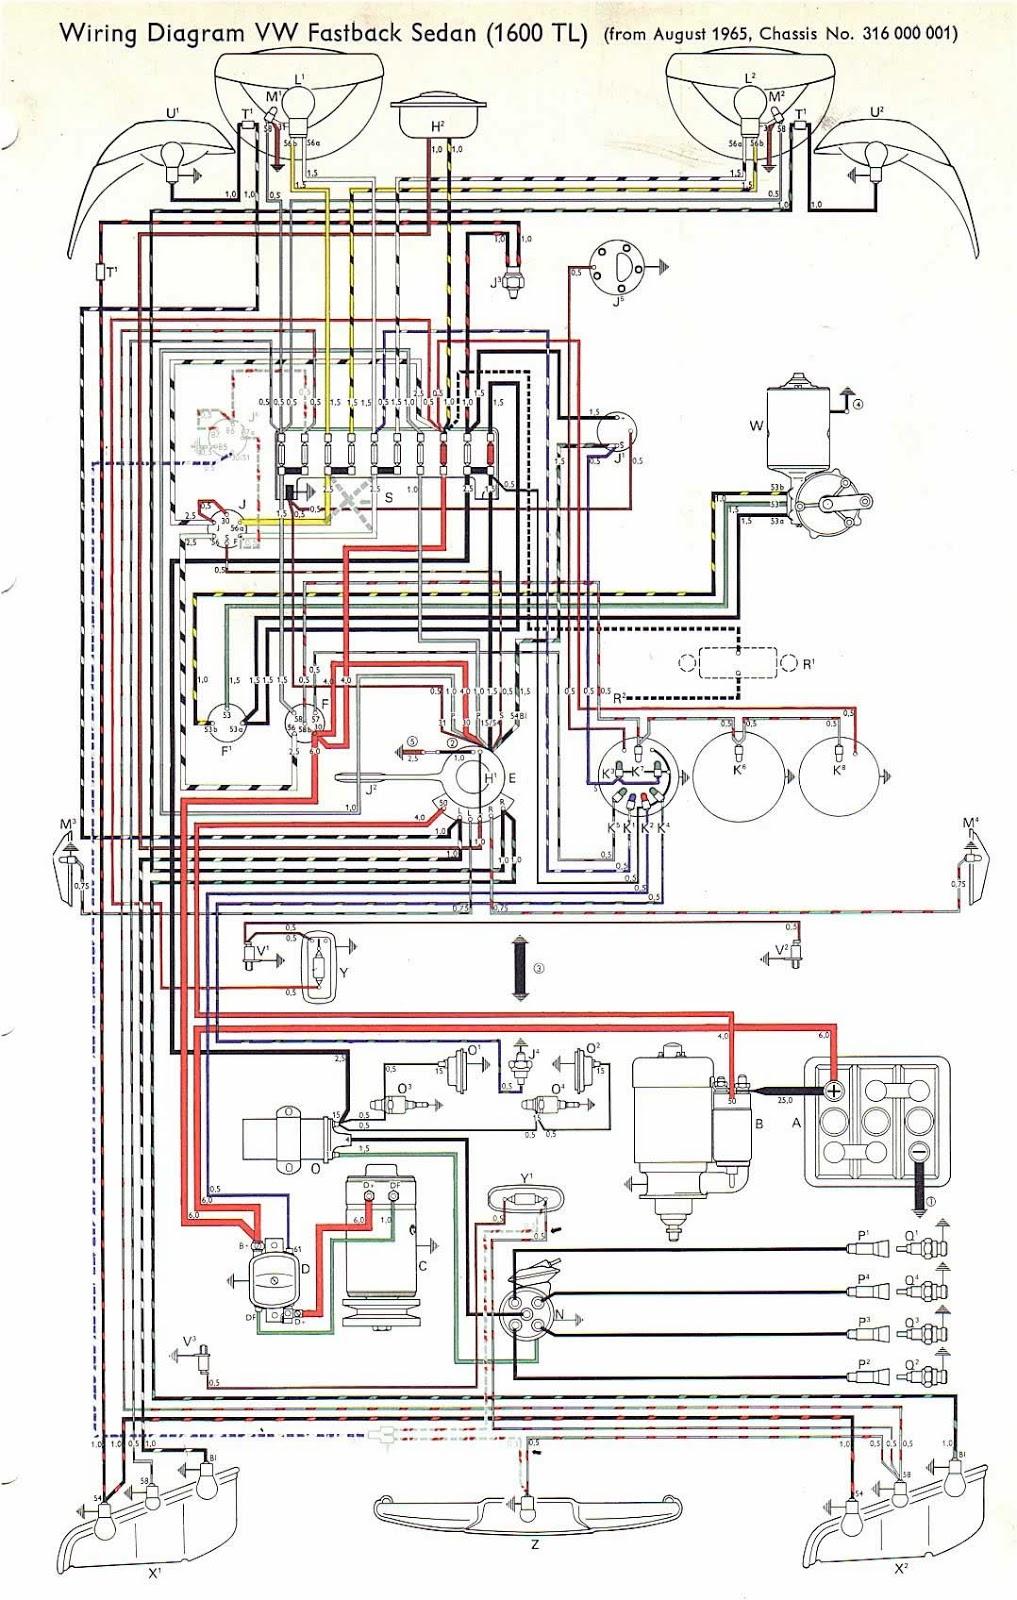 HD wallpapers peugeot 207 wiring diagram android-central-wallpaper ...